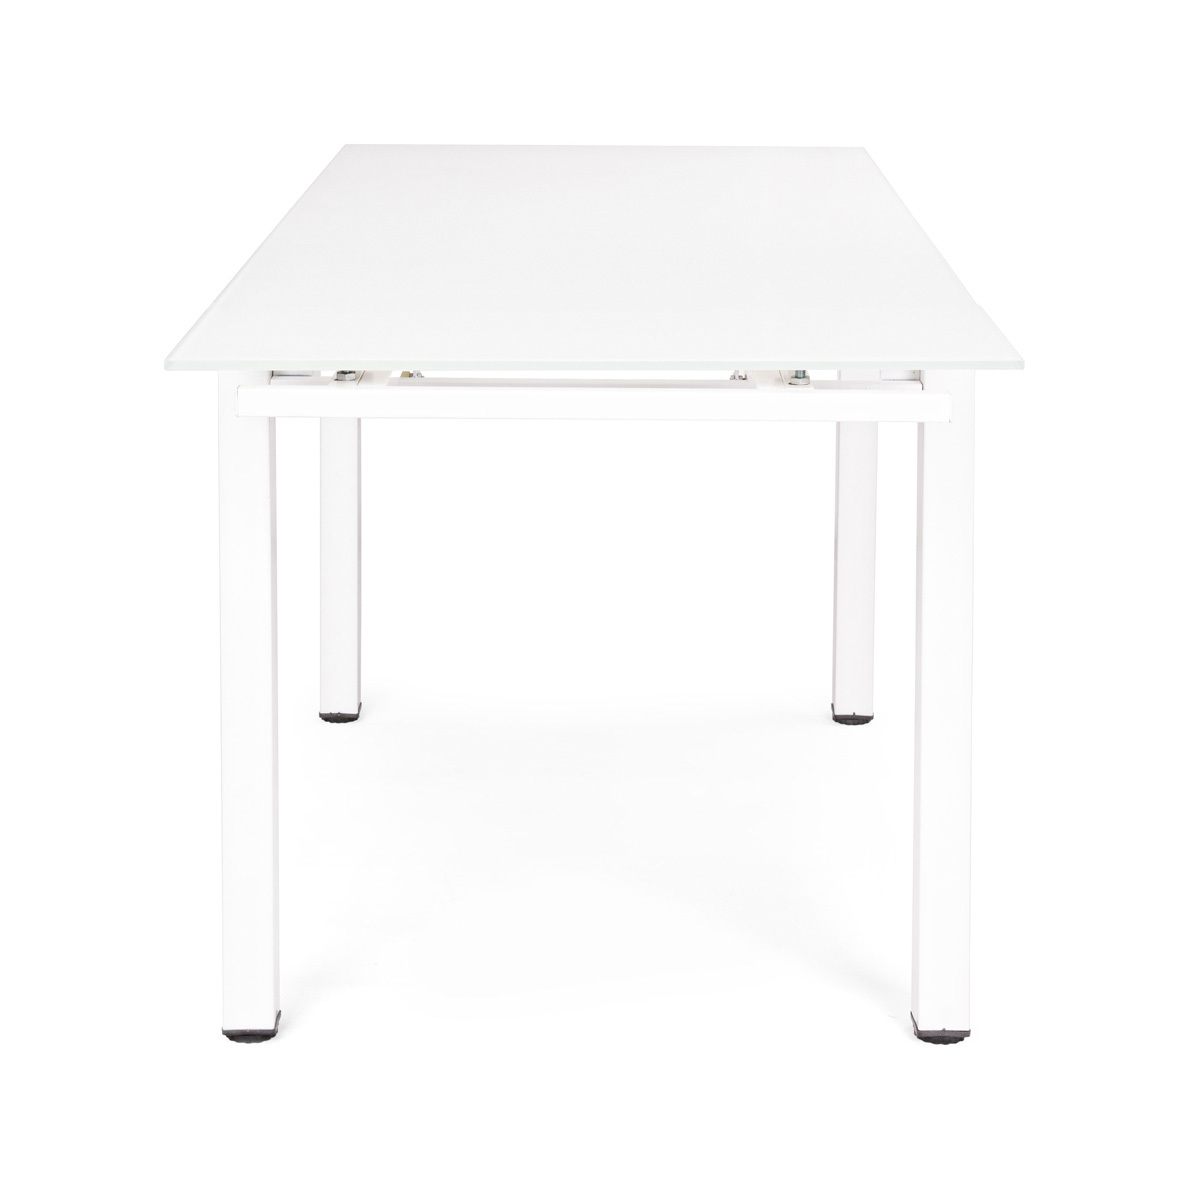 Photos 4: Bizzotto Extendible table l. 110 x 74 0731173